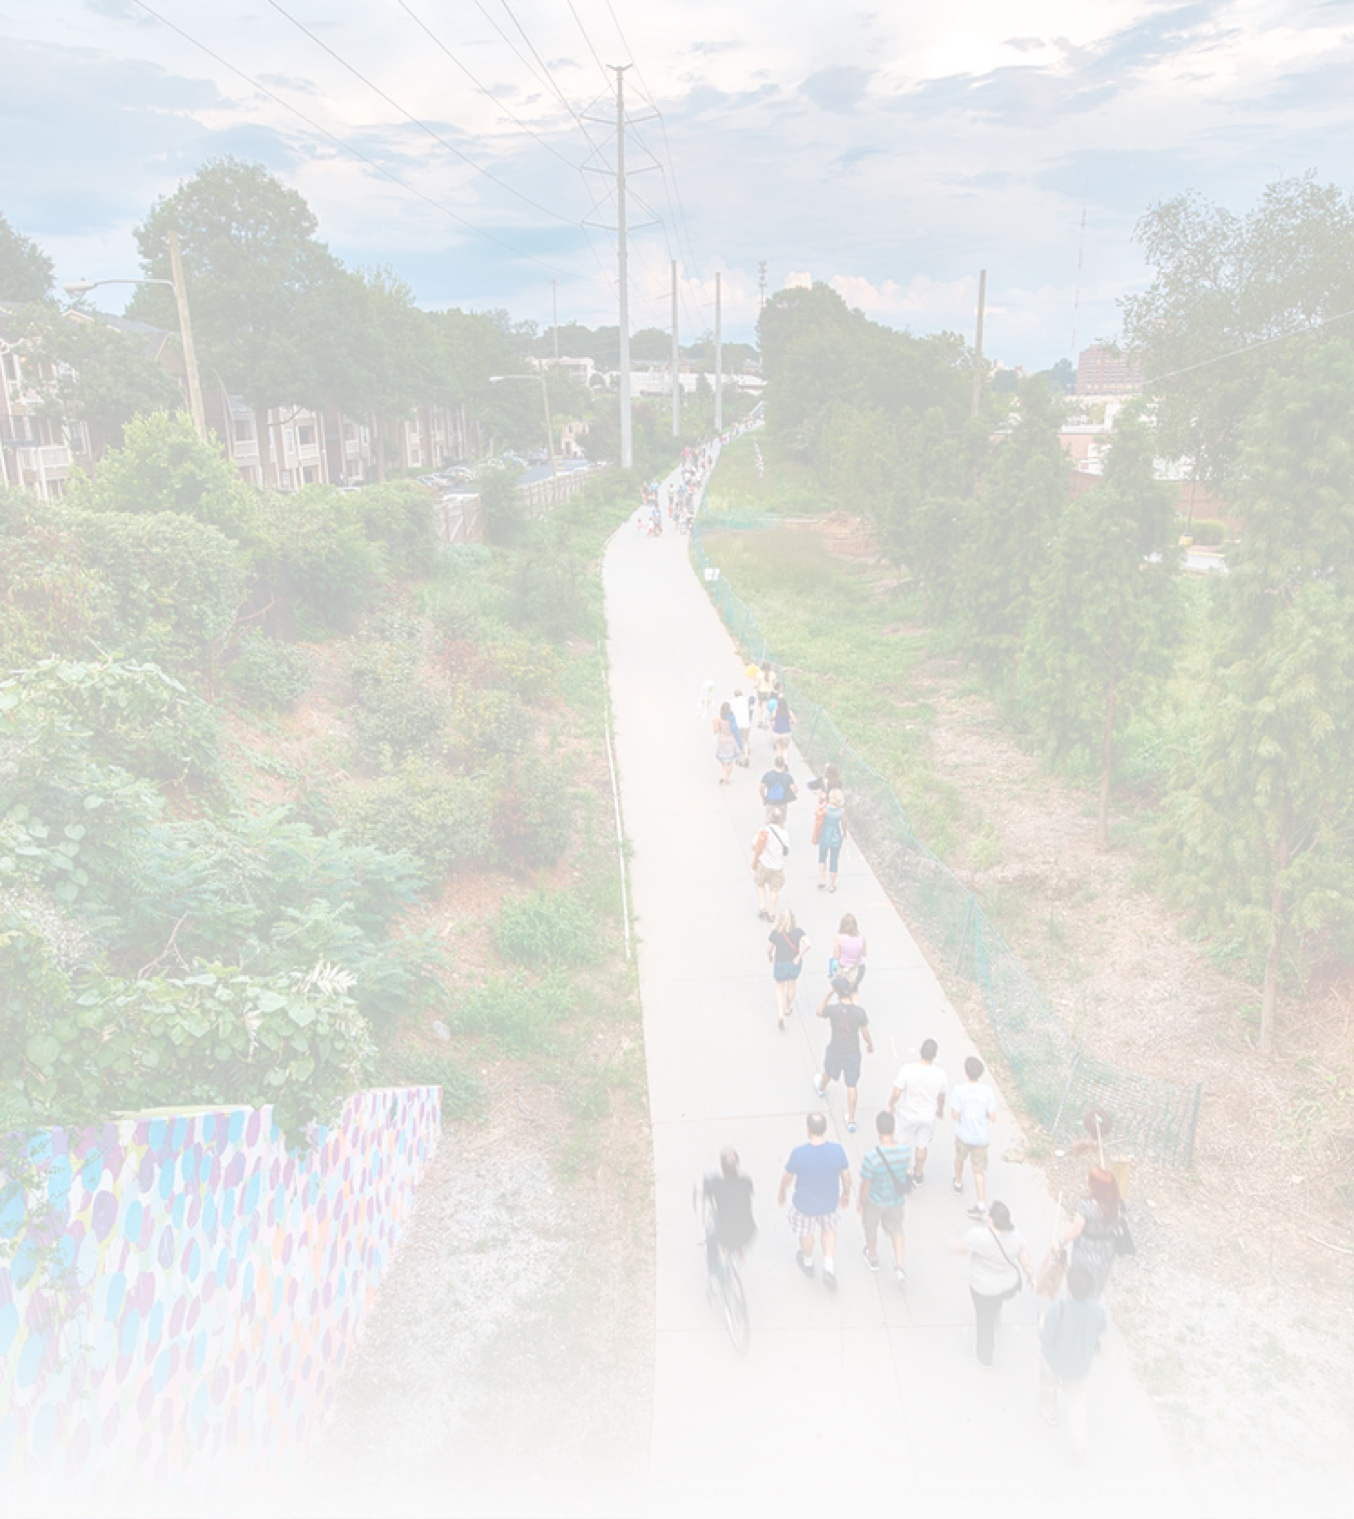 """What is the BeltLine's Mission? - """"As one of the largest, most wide-ranging urban redevelopment programs in the United States, the Atlanta BeltLine is building a more socially and economically resilient Atlanta with our partner organizations and host communities through job creation, inclusive transportation systems, affordable housing, and public spaces for all."""""""